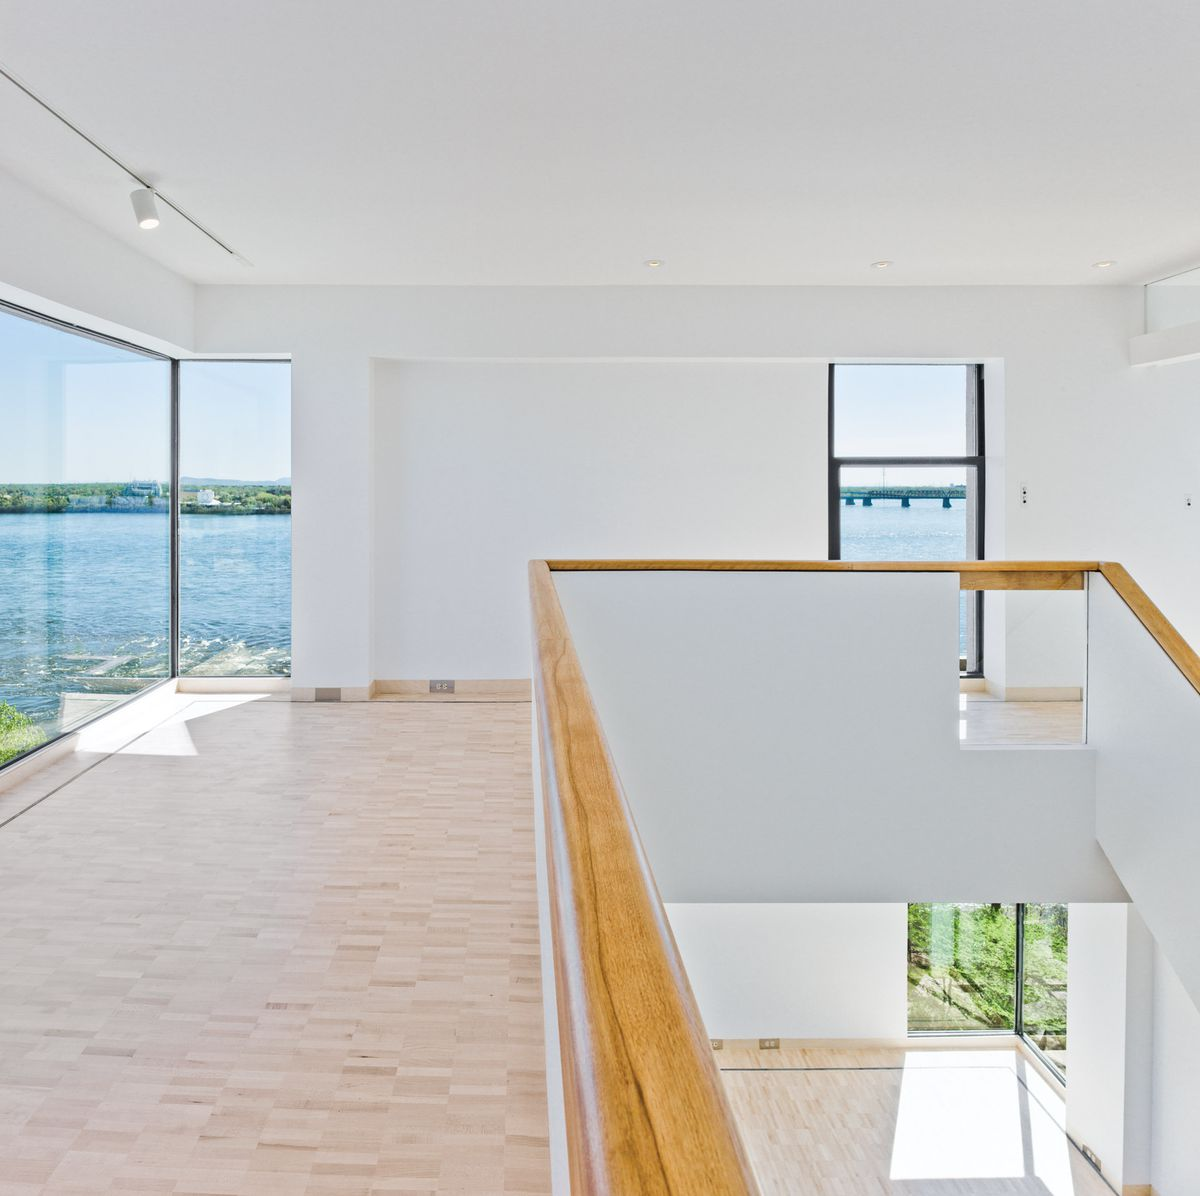 Apartment with wood floors and large windows